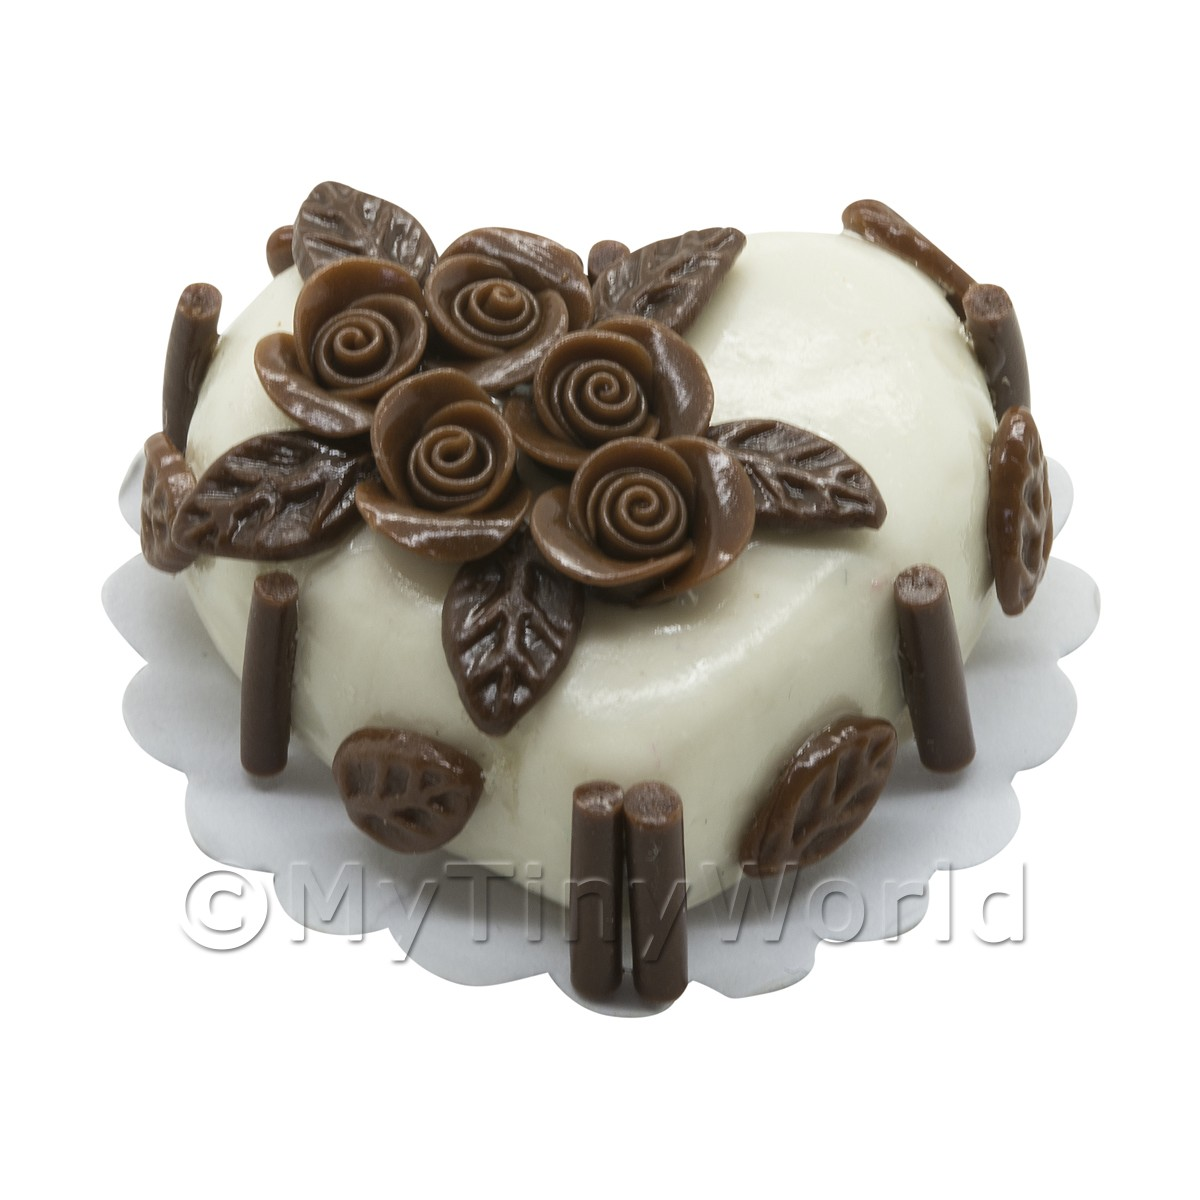 Miniature White Heart Cake With Chocolate Roses